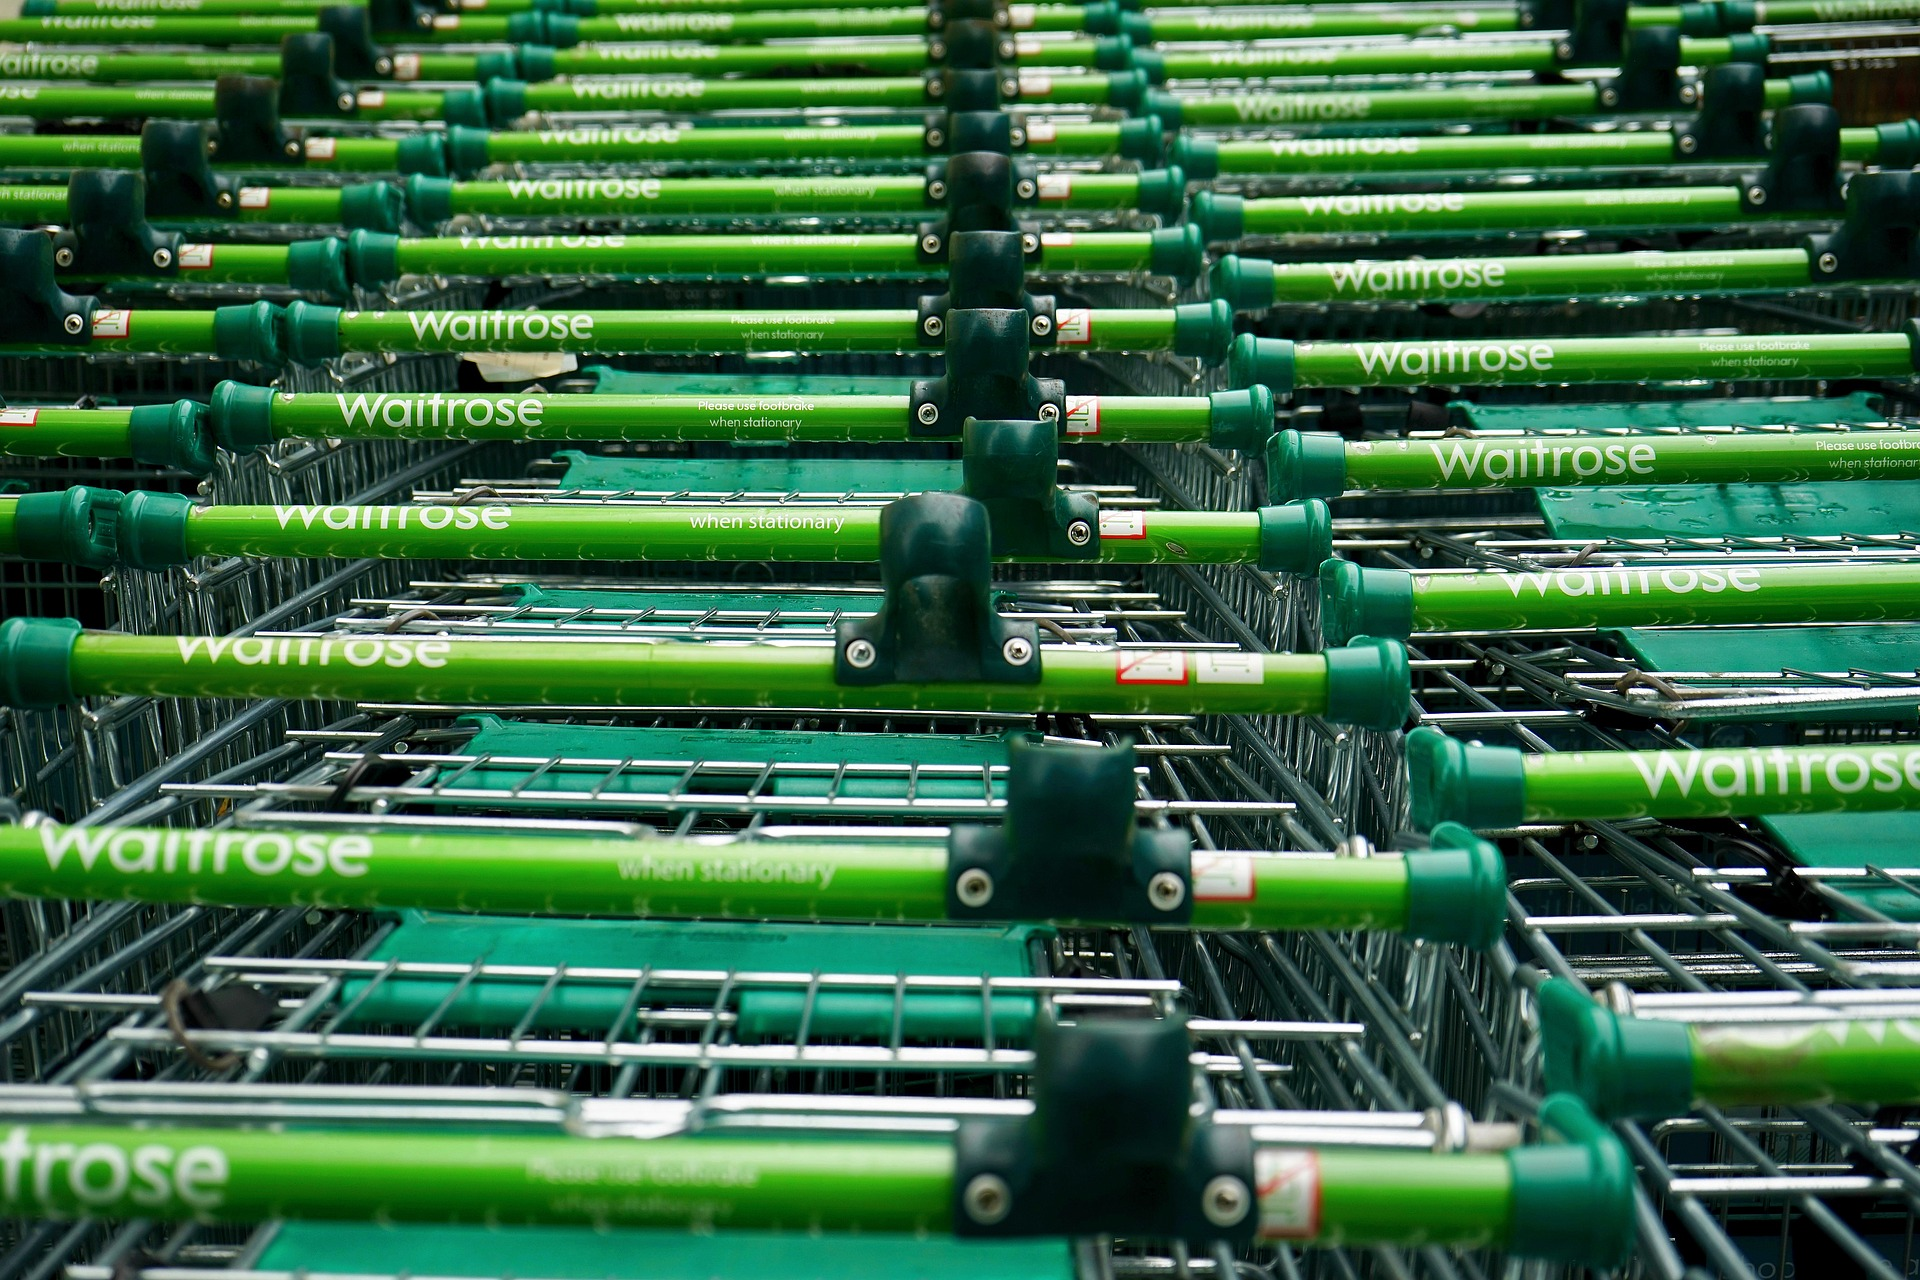 supermarket Waitrose trolley